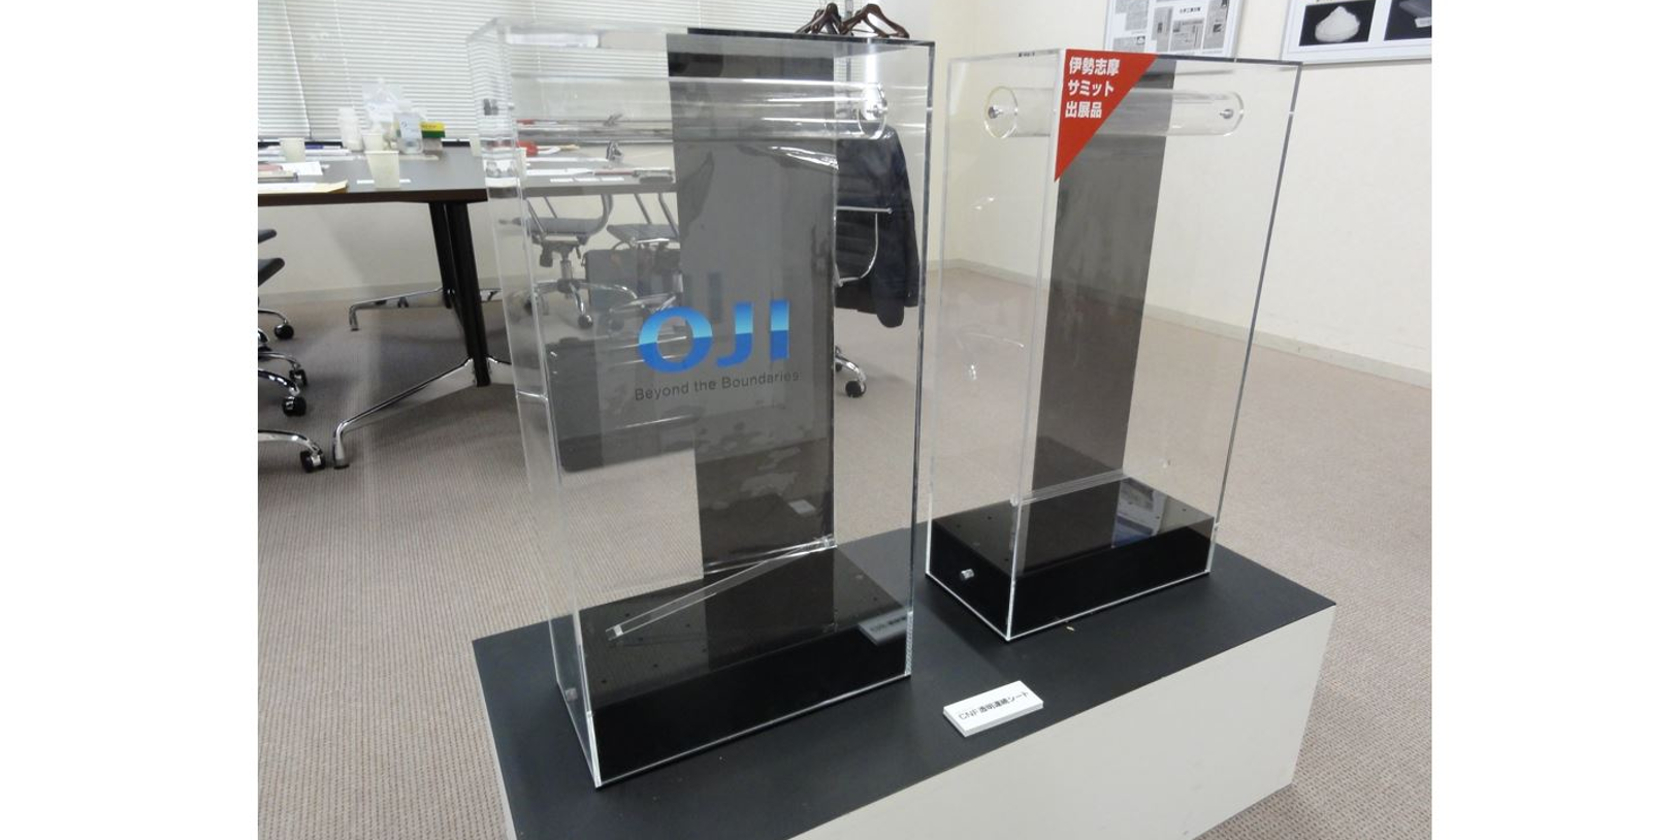 Oji Aims to Break the 10B Yen Barrier With CNF Sales